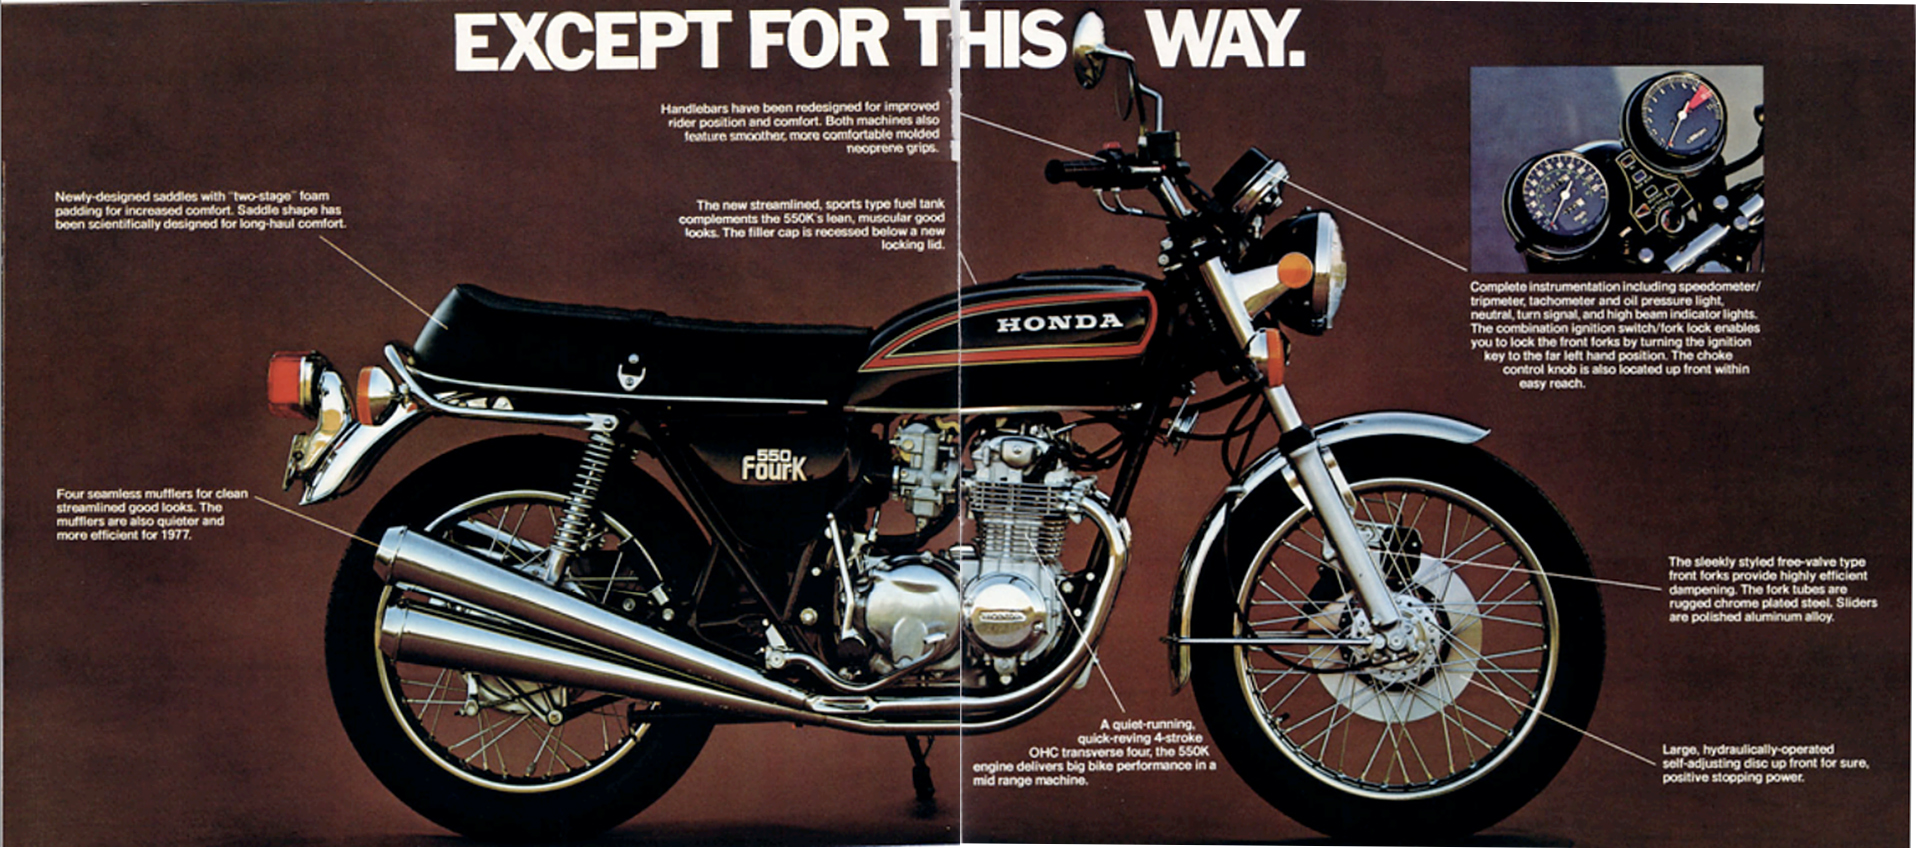 vintage honda motorcycle ads. thisistheonlywaytogohonda advertisements vintage honda motorcycle ads